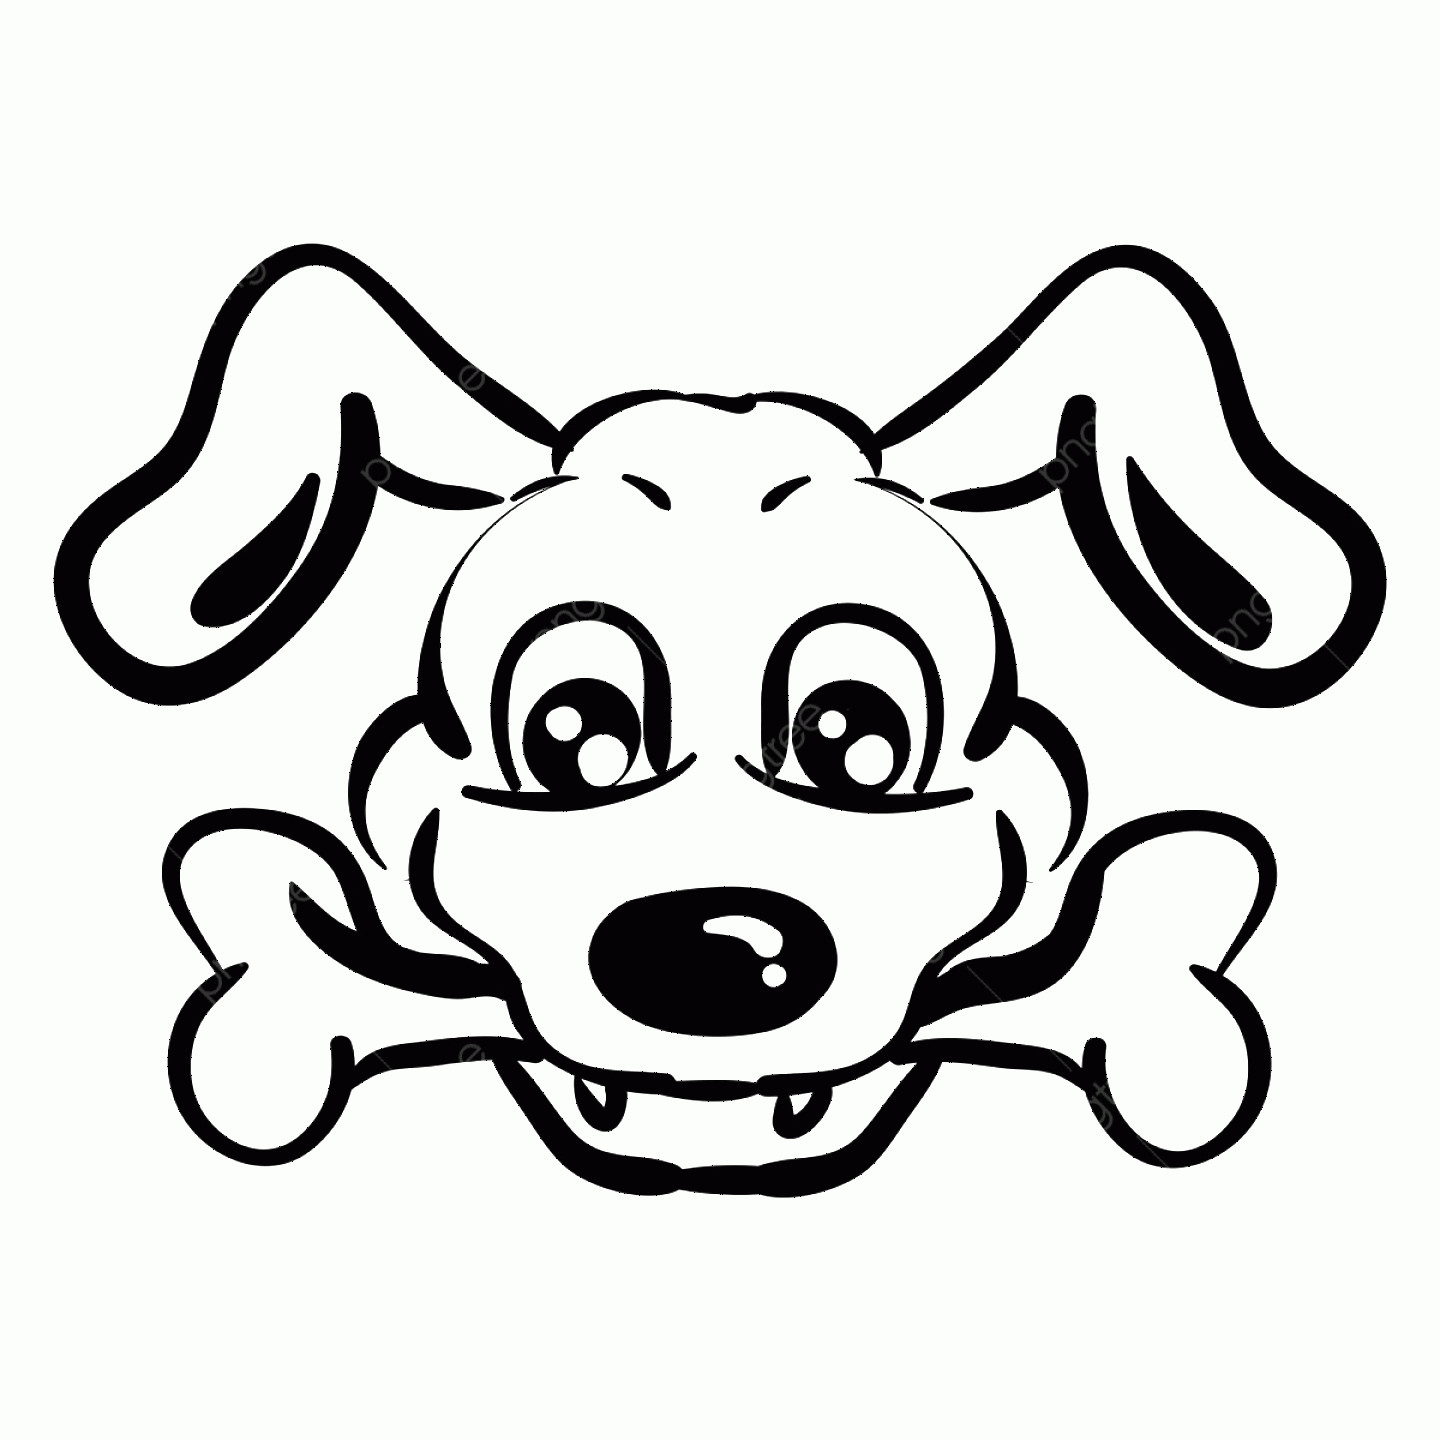 Dog Bone Vector Graphics: Dog With Bone Drawing Illustration Vector On White Background